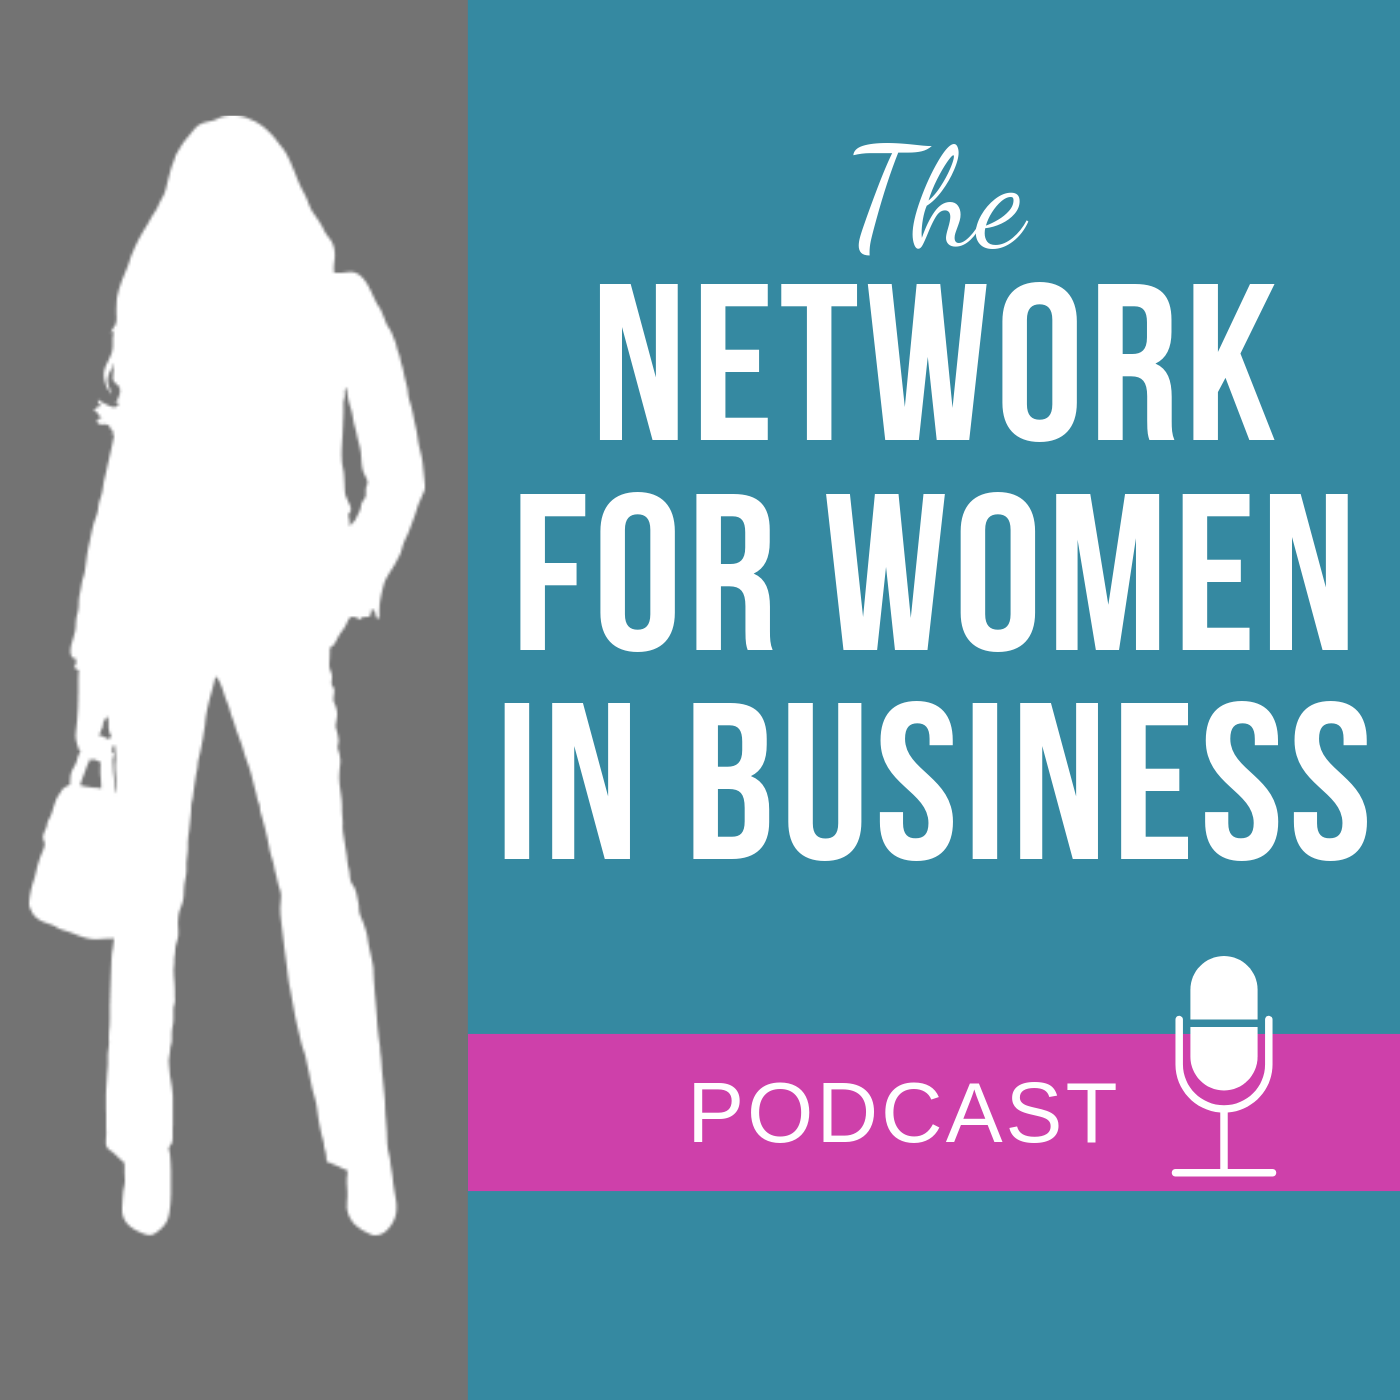 The Network for Women in Business Podcast